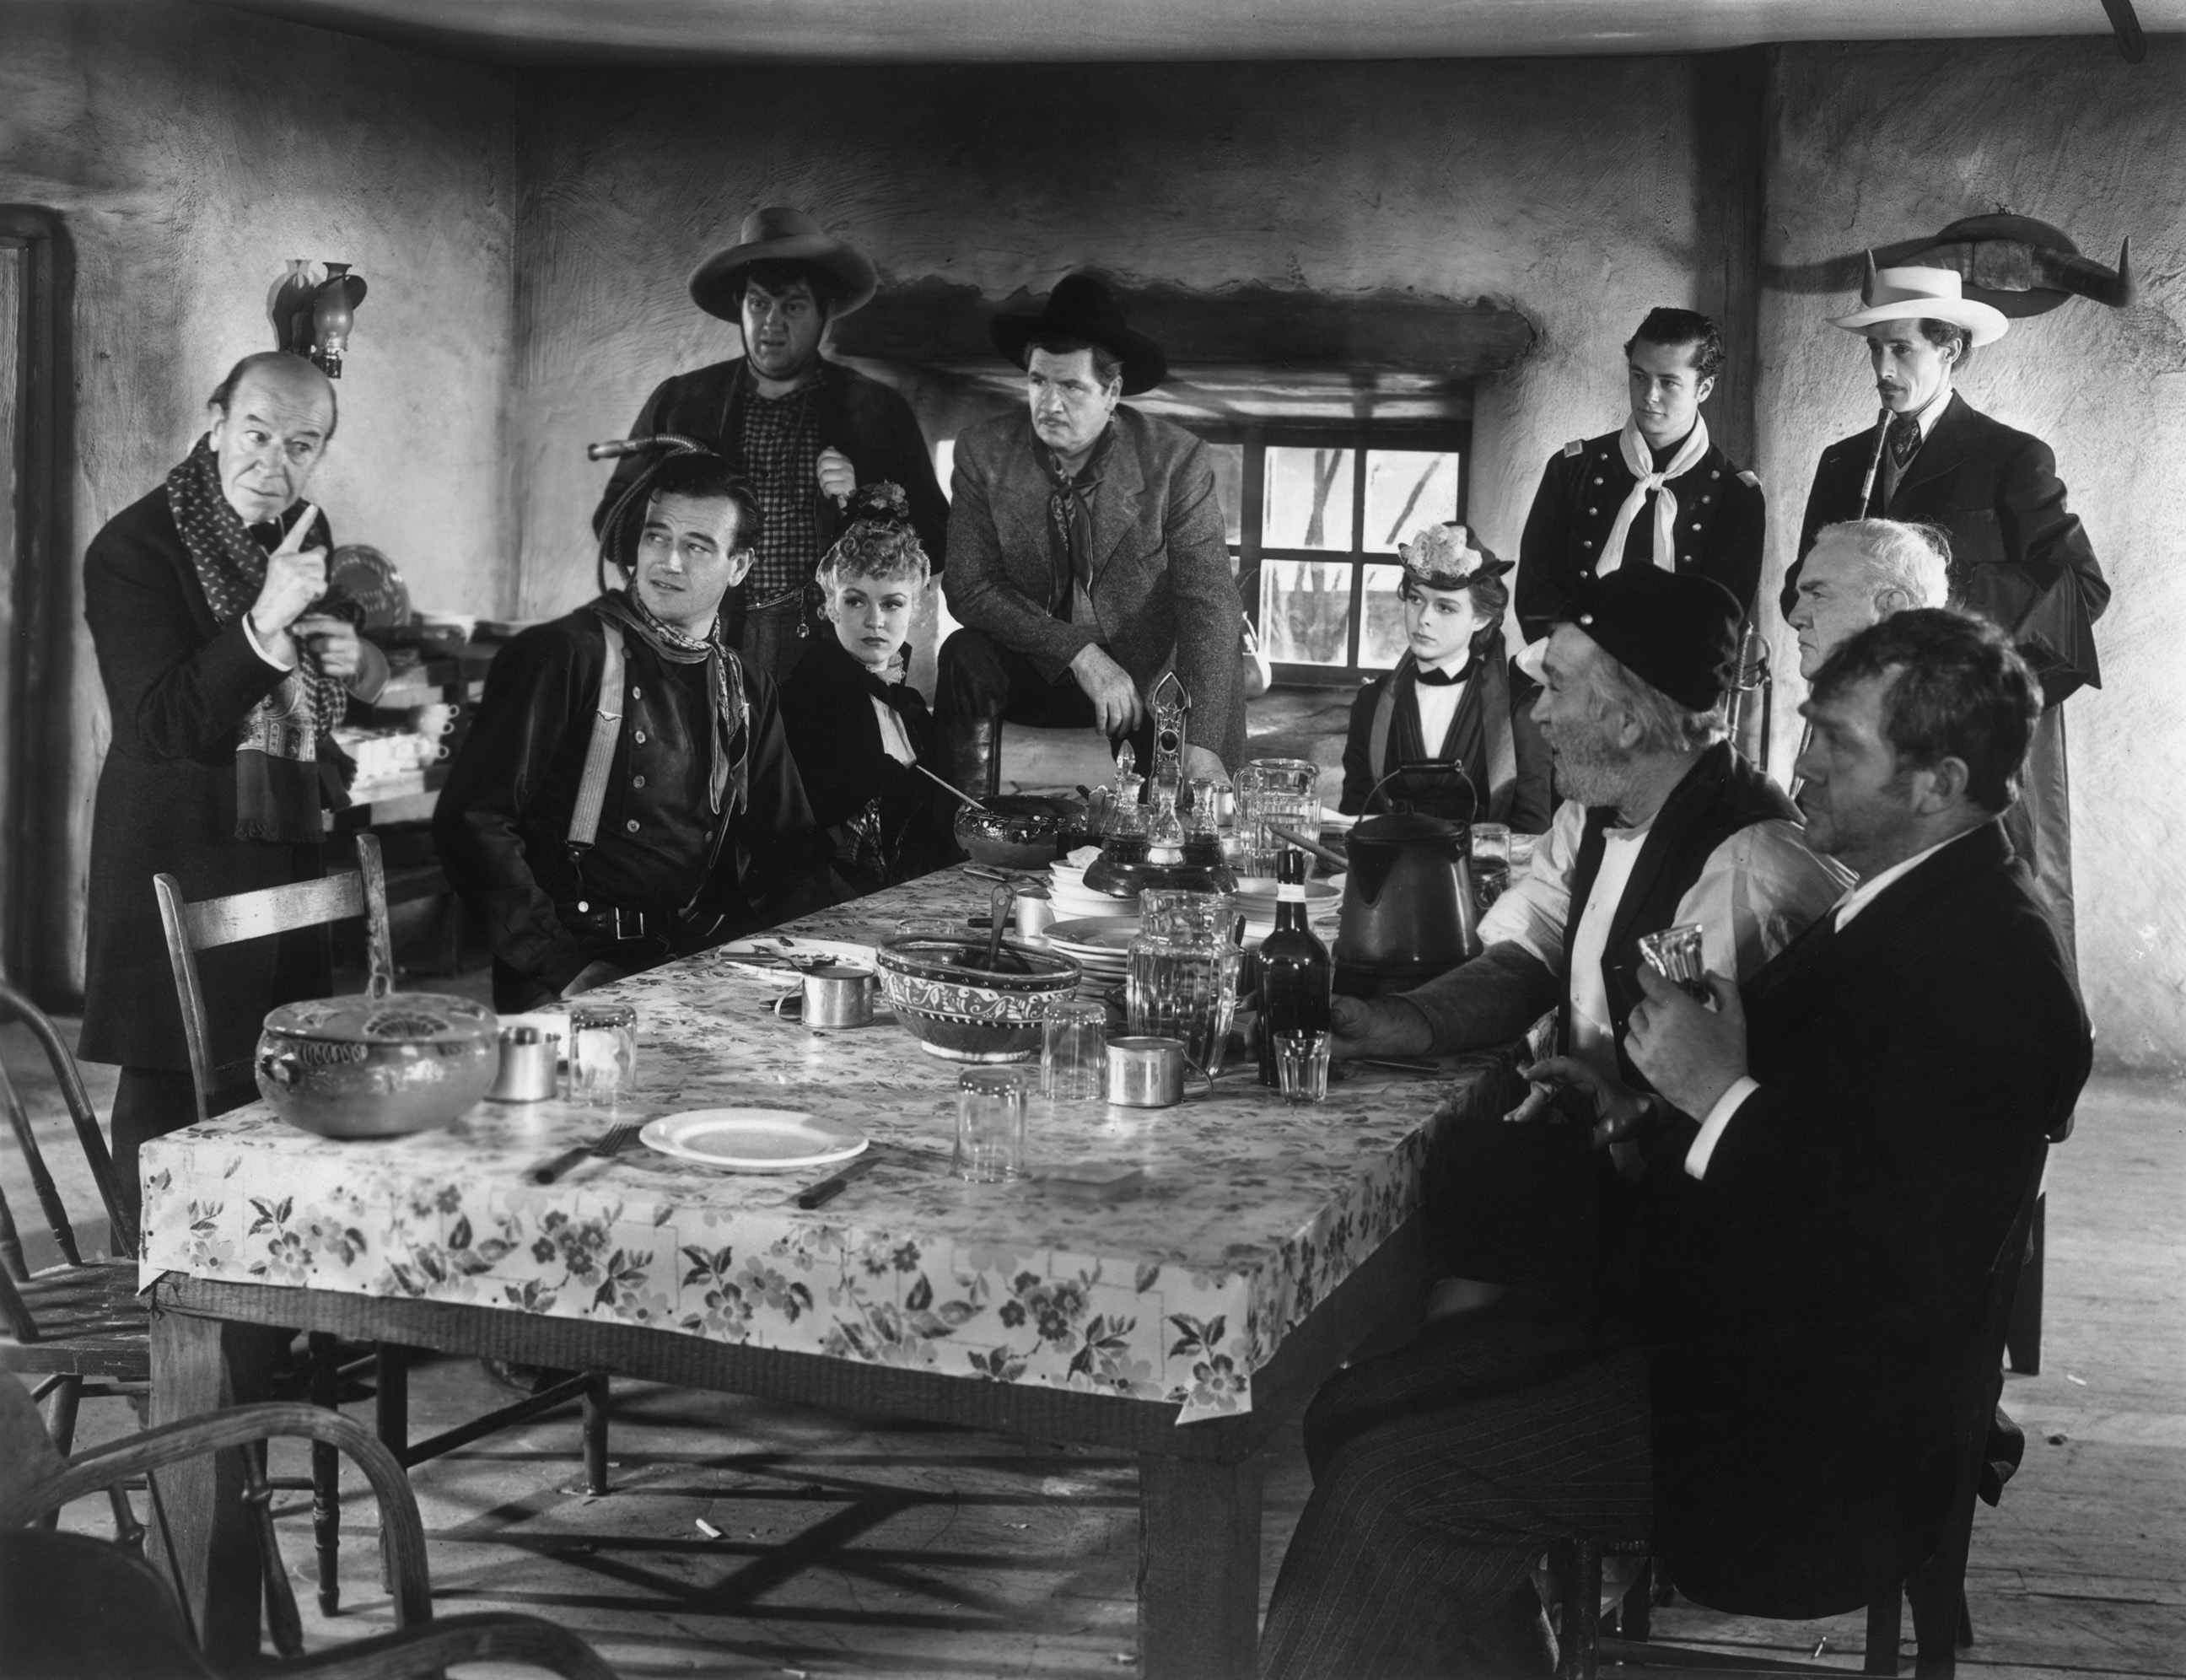 John Wayne with Donald Meek, Andy Devine,Claire Trevor, George Bancroft,Louise Platt, Tim Holt,John Carradine, Berton Churchill,Tom Tyler and Thomas Mitchell